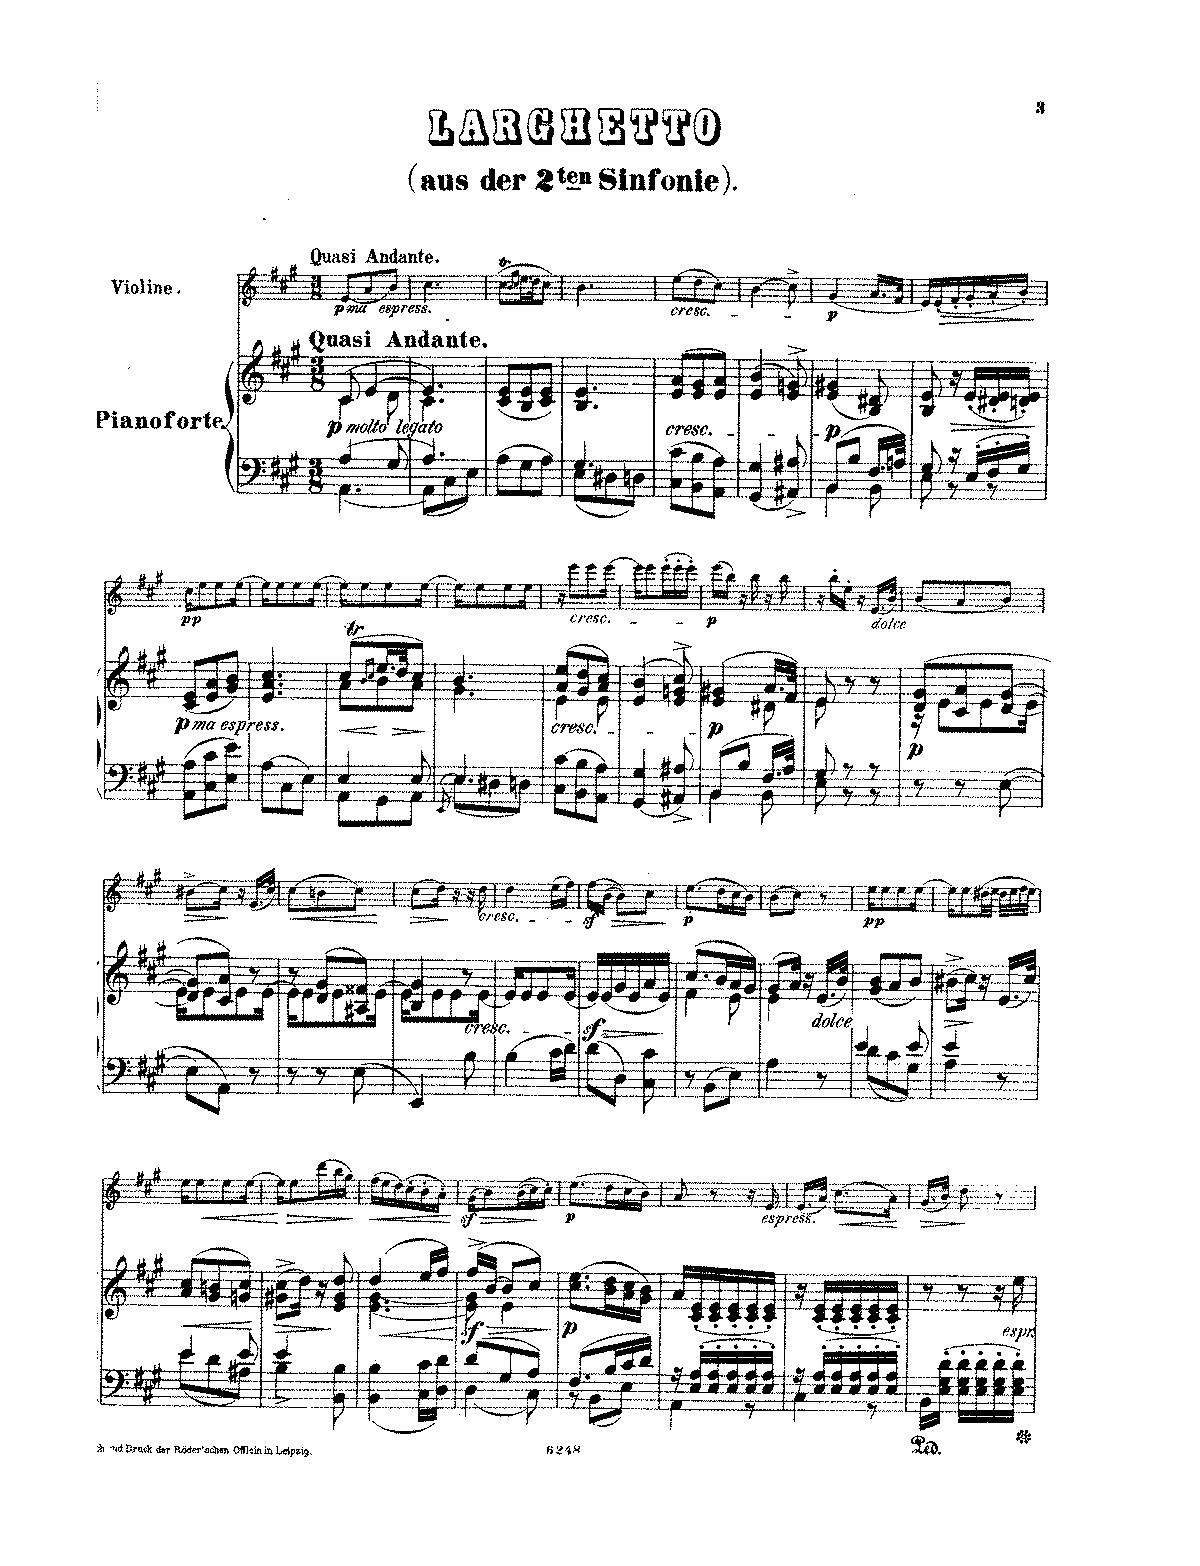 PMLP02580-Beeth Larg s2 no 1 of 001 Kll St vol. 3 Beethoven cmplt.pdf